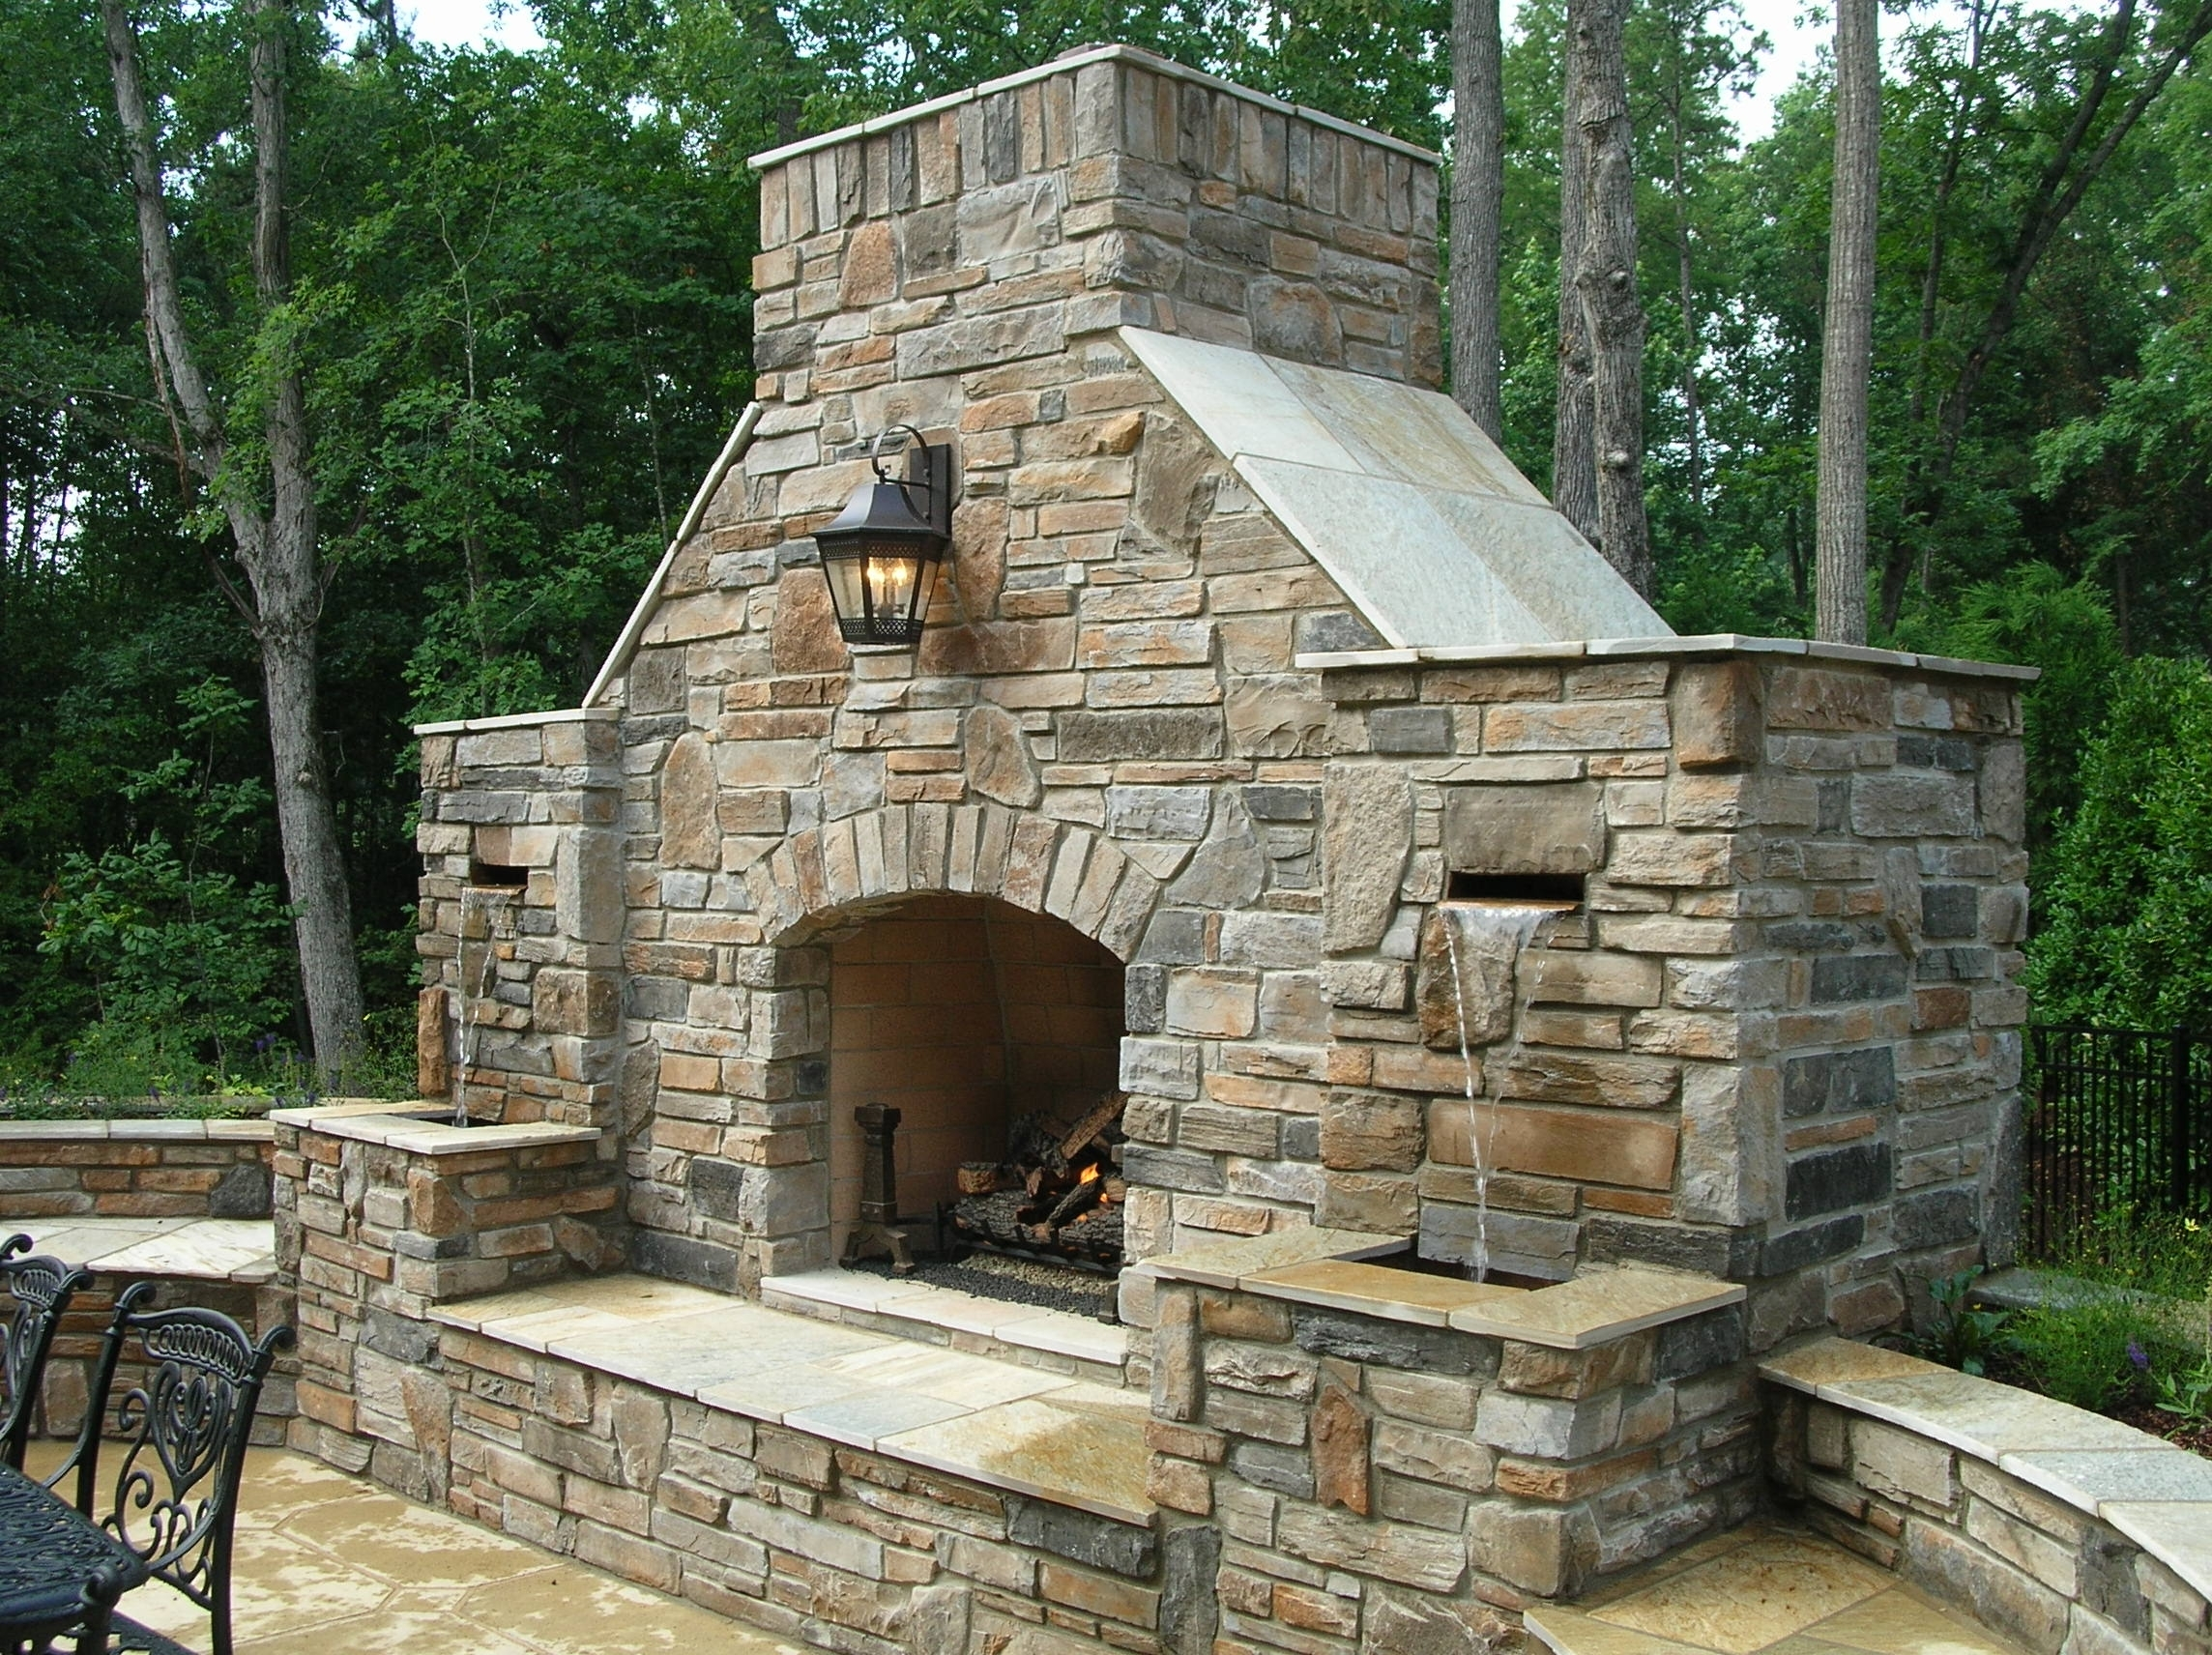 Image of: Outdoor Fireplace Kits For The Diyer Fireplace Kits In Masonry Outdoor Fireplace The Right Options For Masonry Outdoor Fireplace